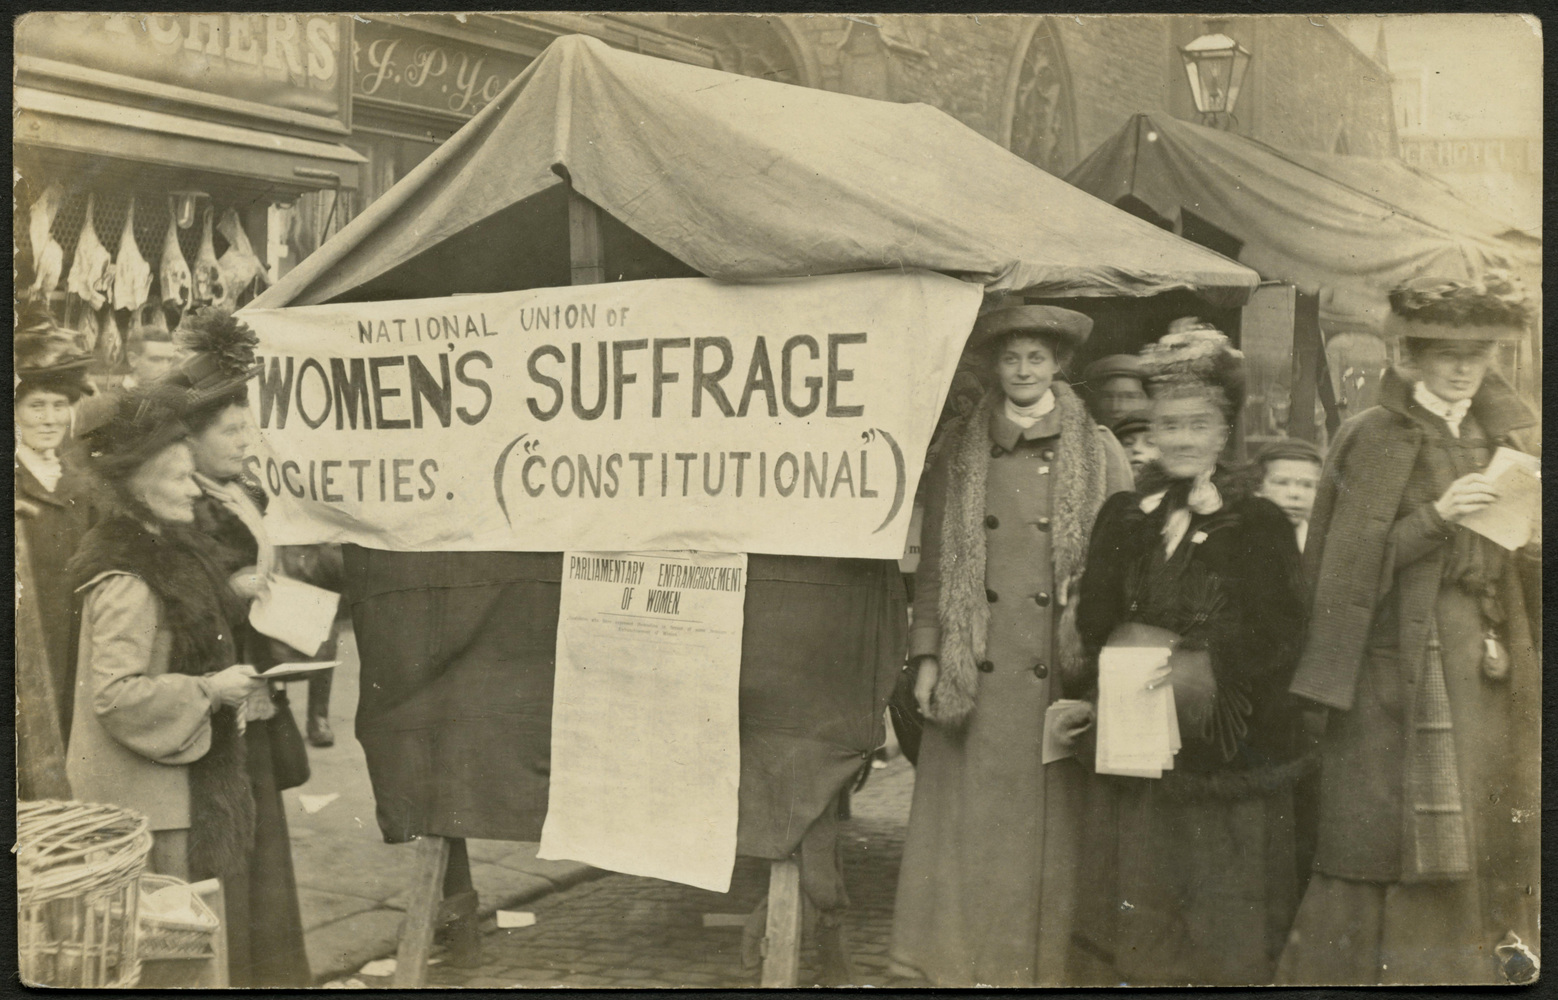 National Union of Women's Suffrage Societies